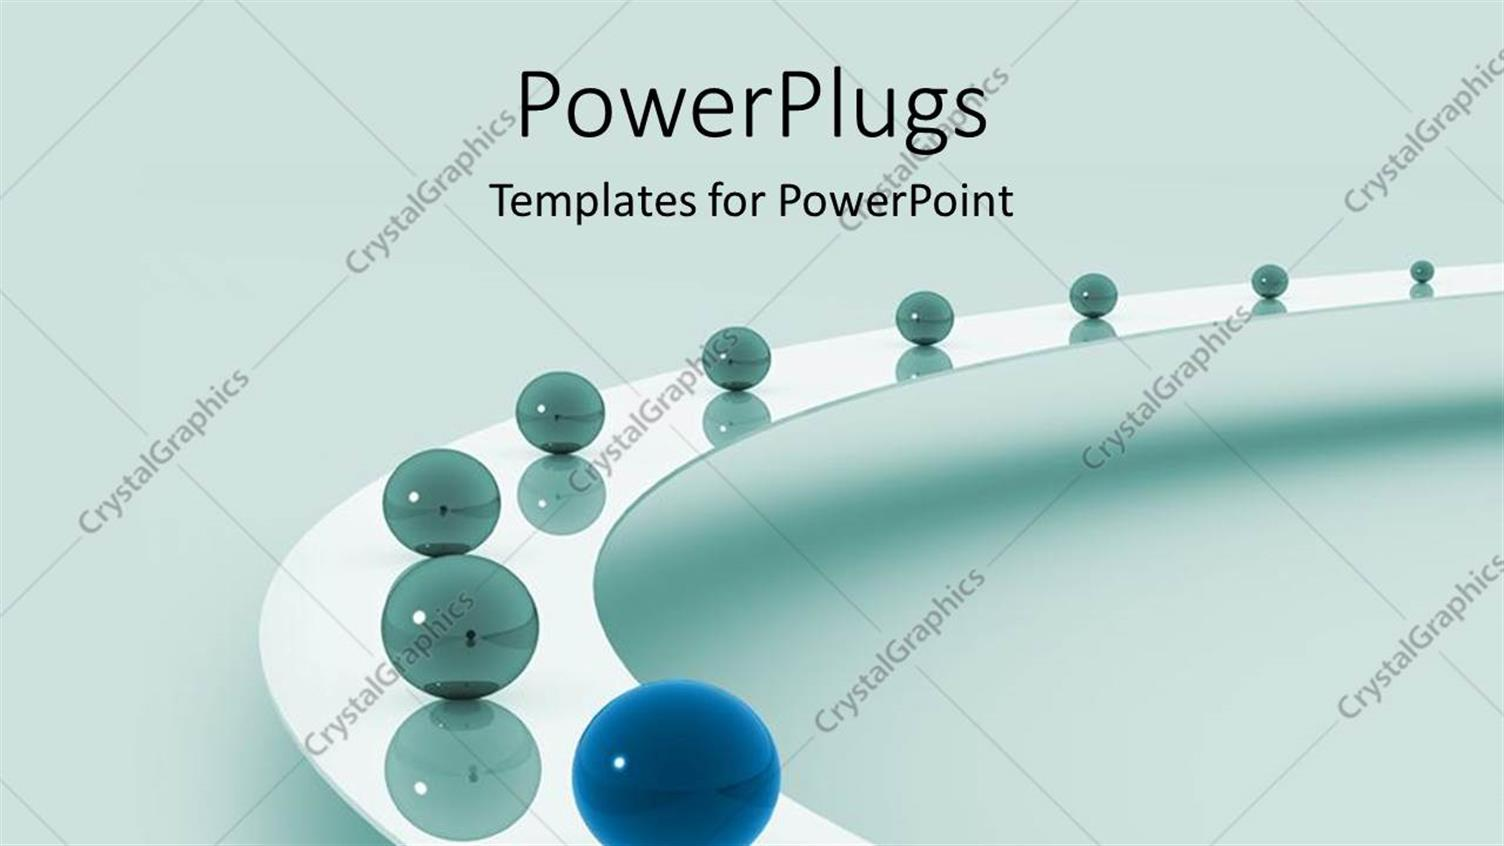 PowerPoint Template Displaying Leadership as a Metaphor with Marbles on a Grey Background